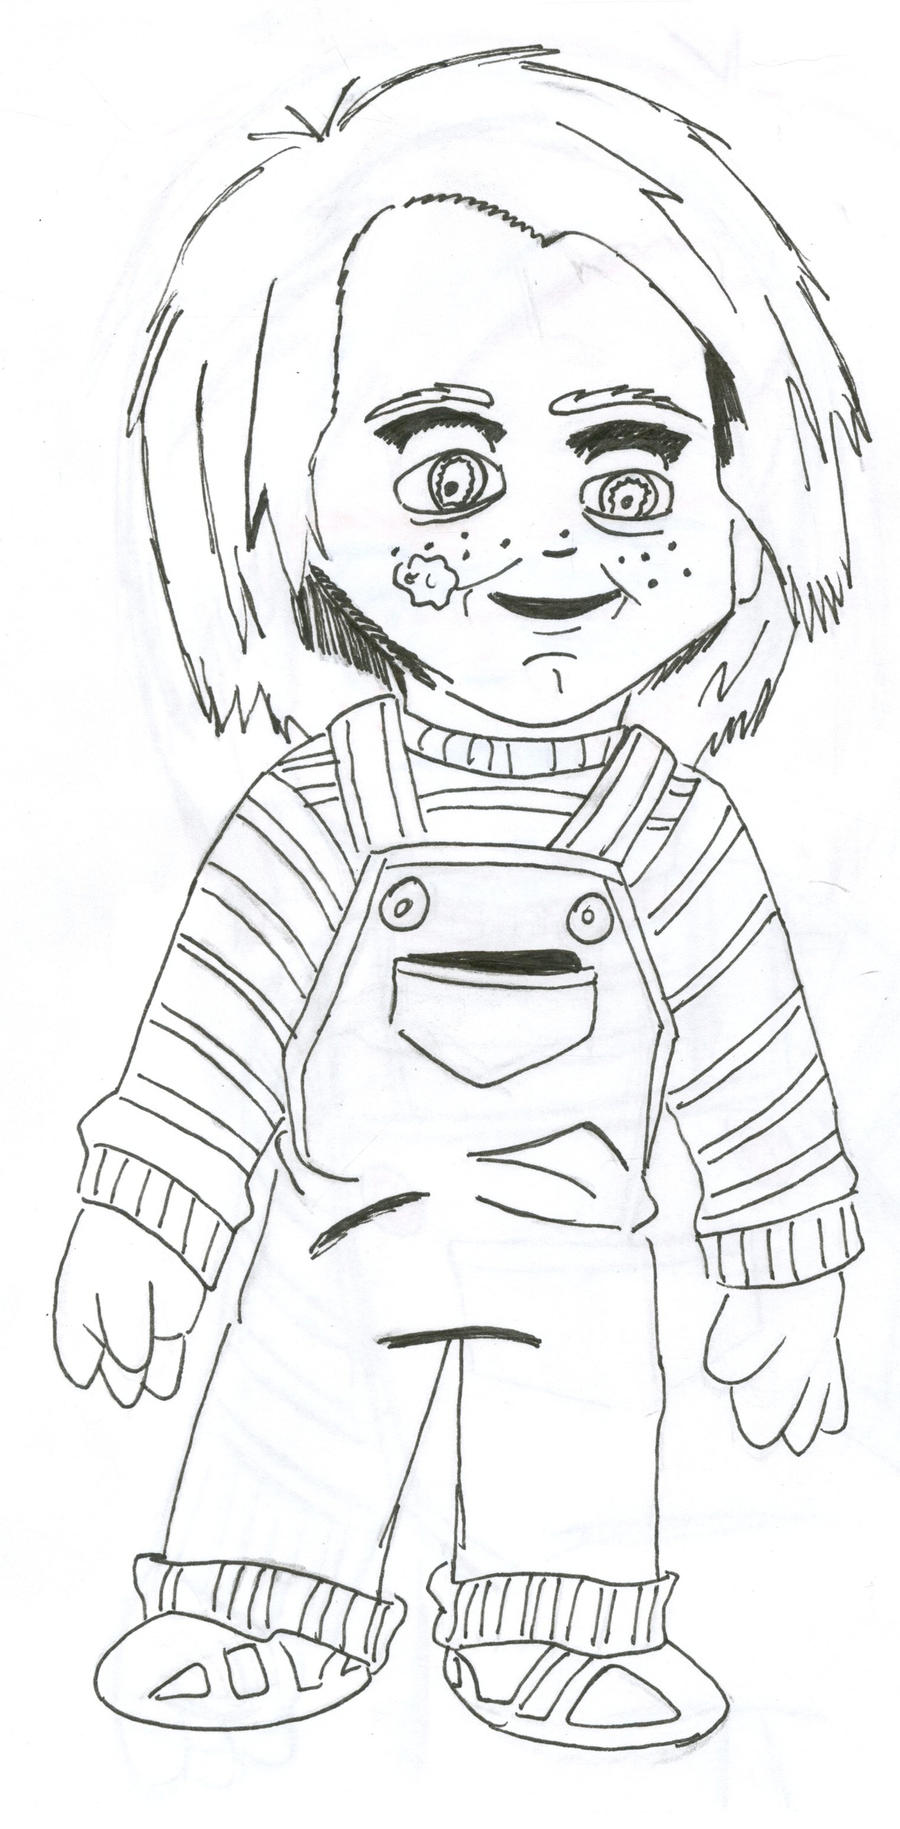 Inked Child's Play sketch by captstar1 on DeviantArt